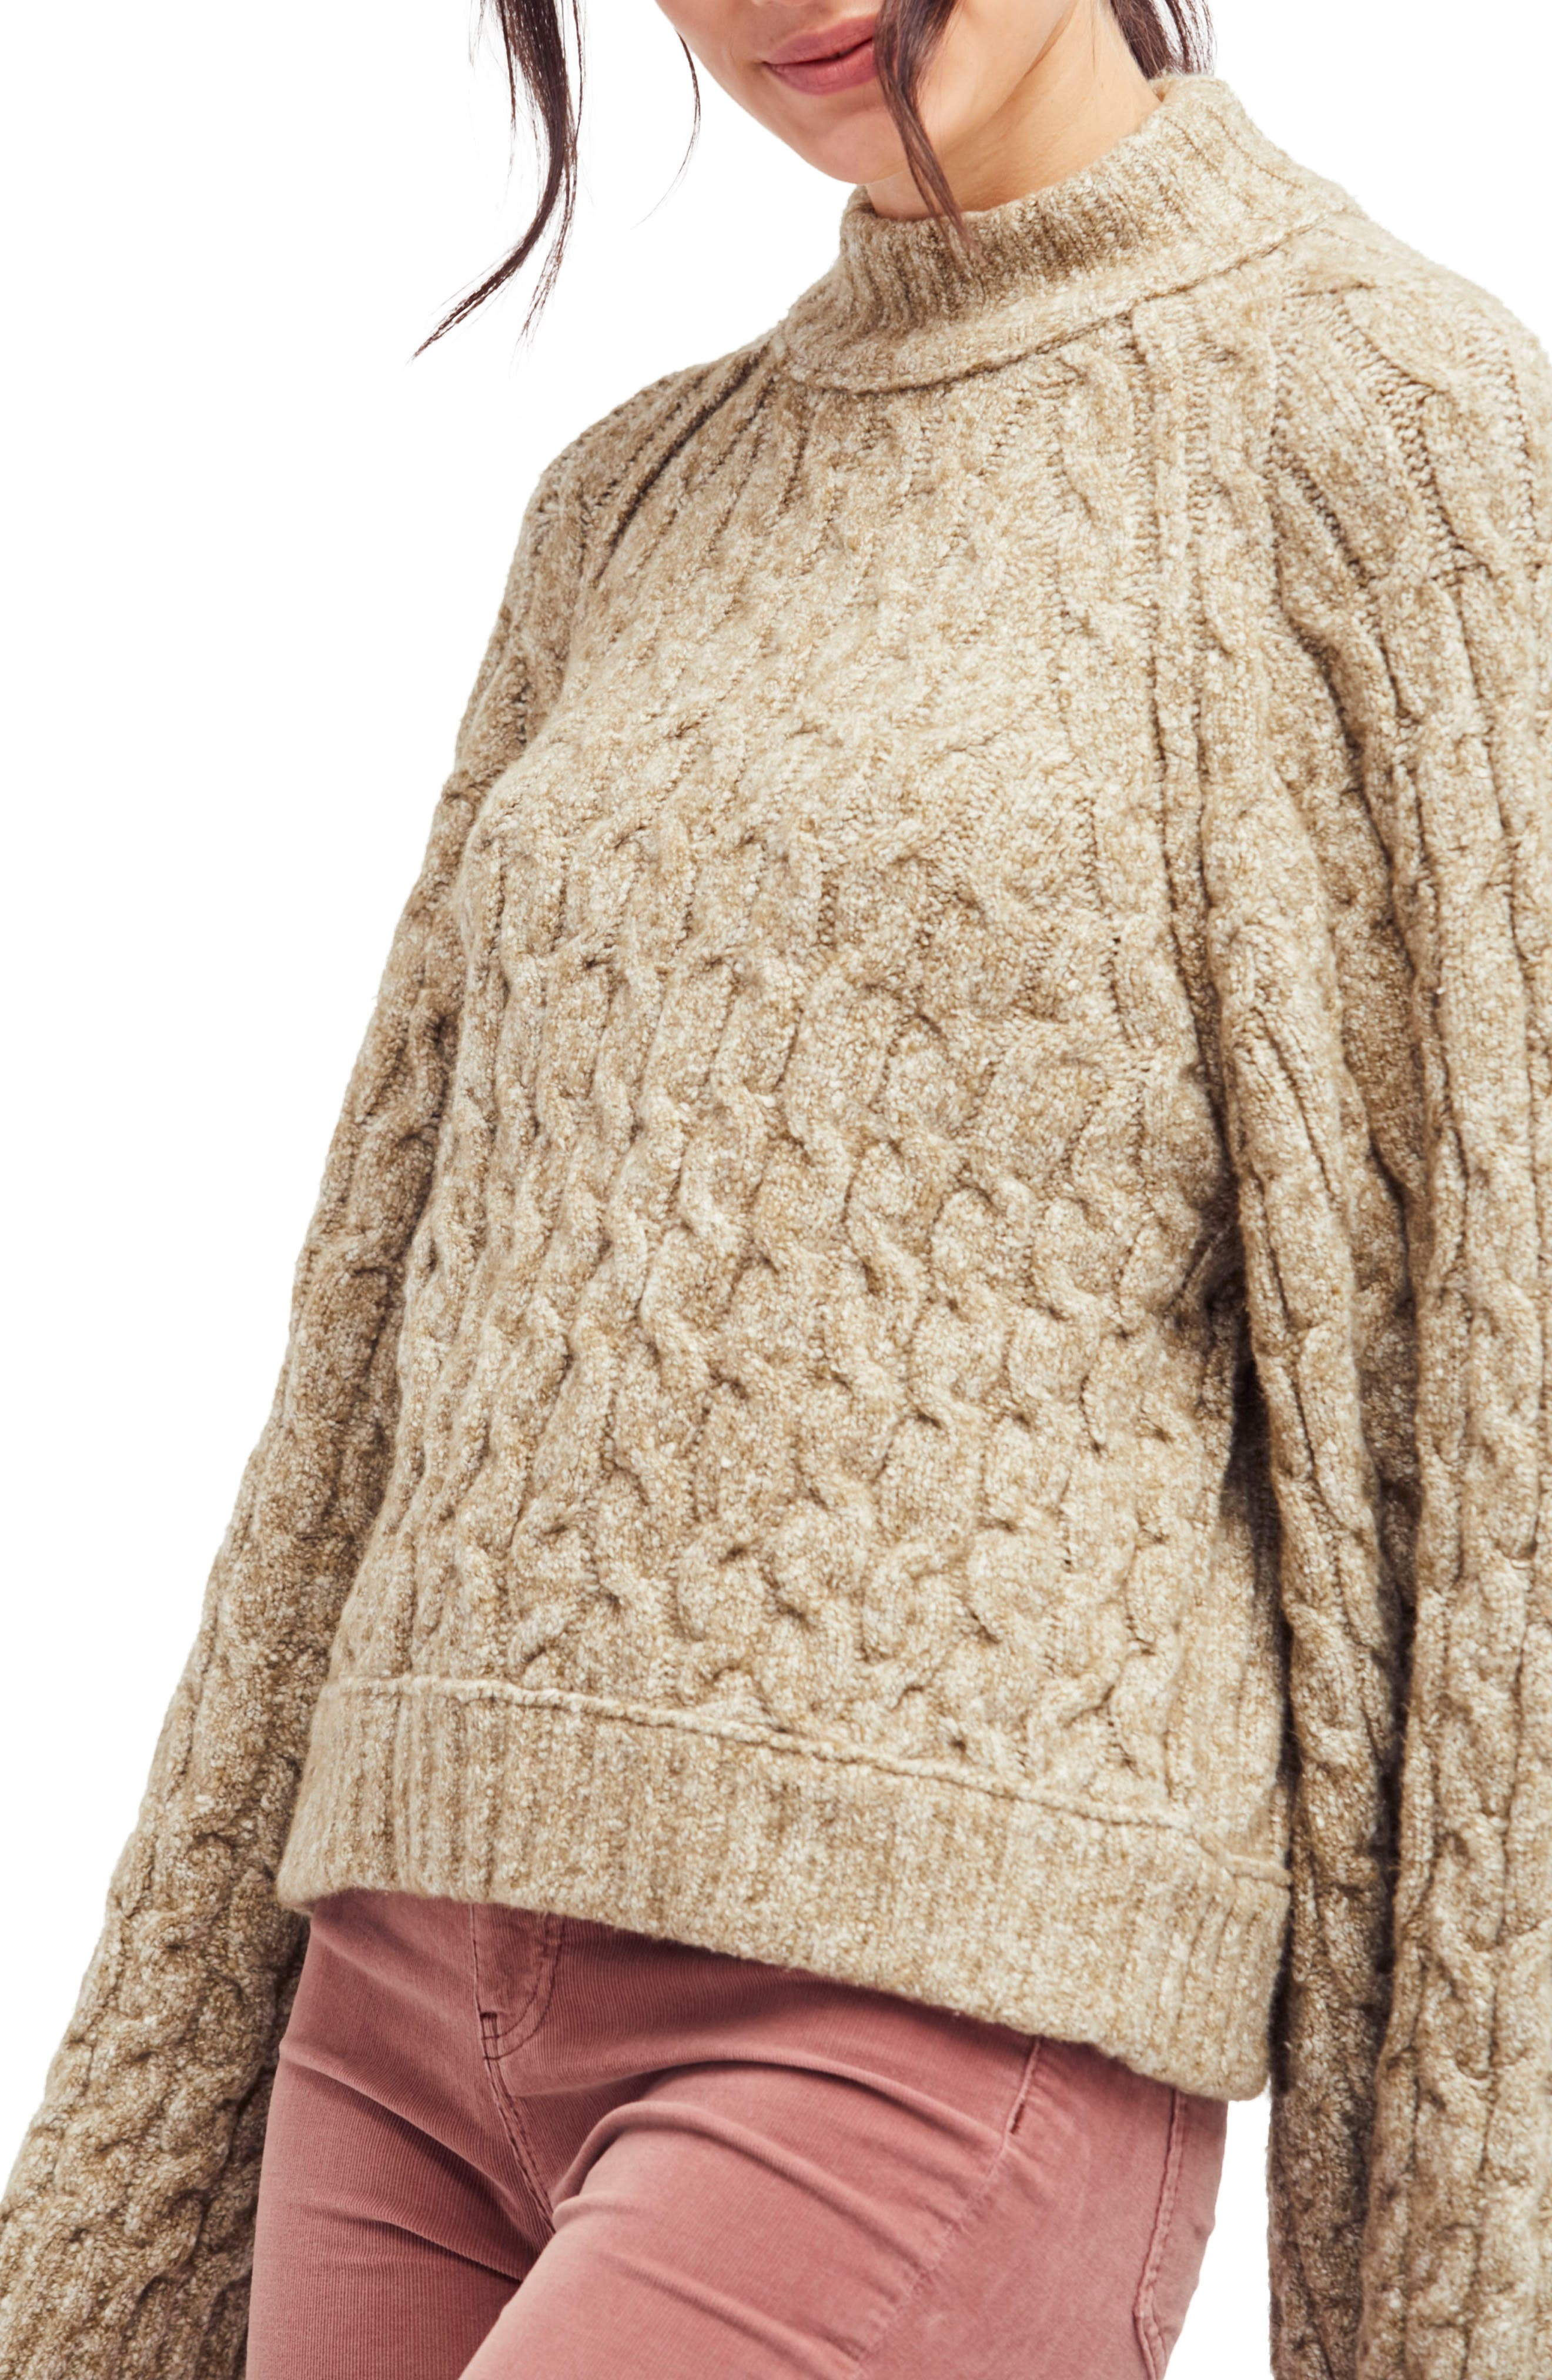 Free People Snow Bird Cable Knit Sweater